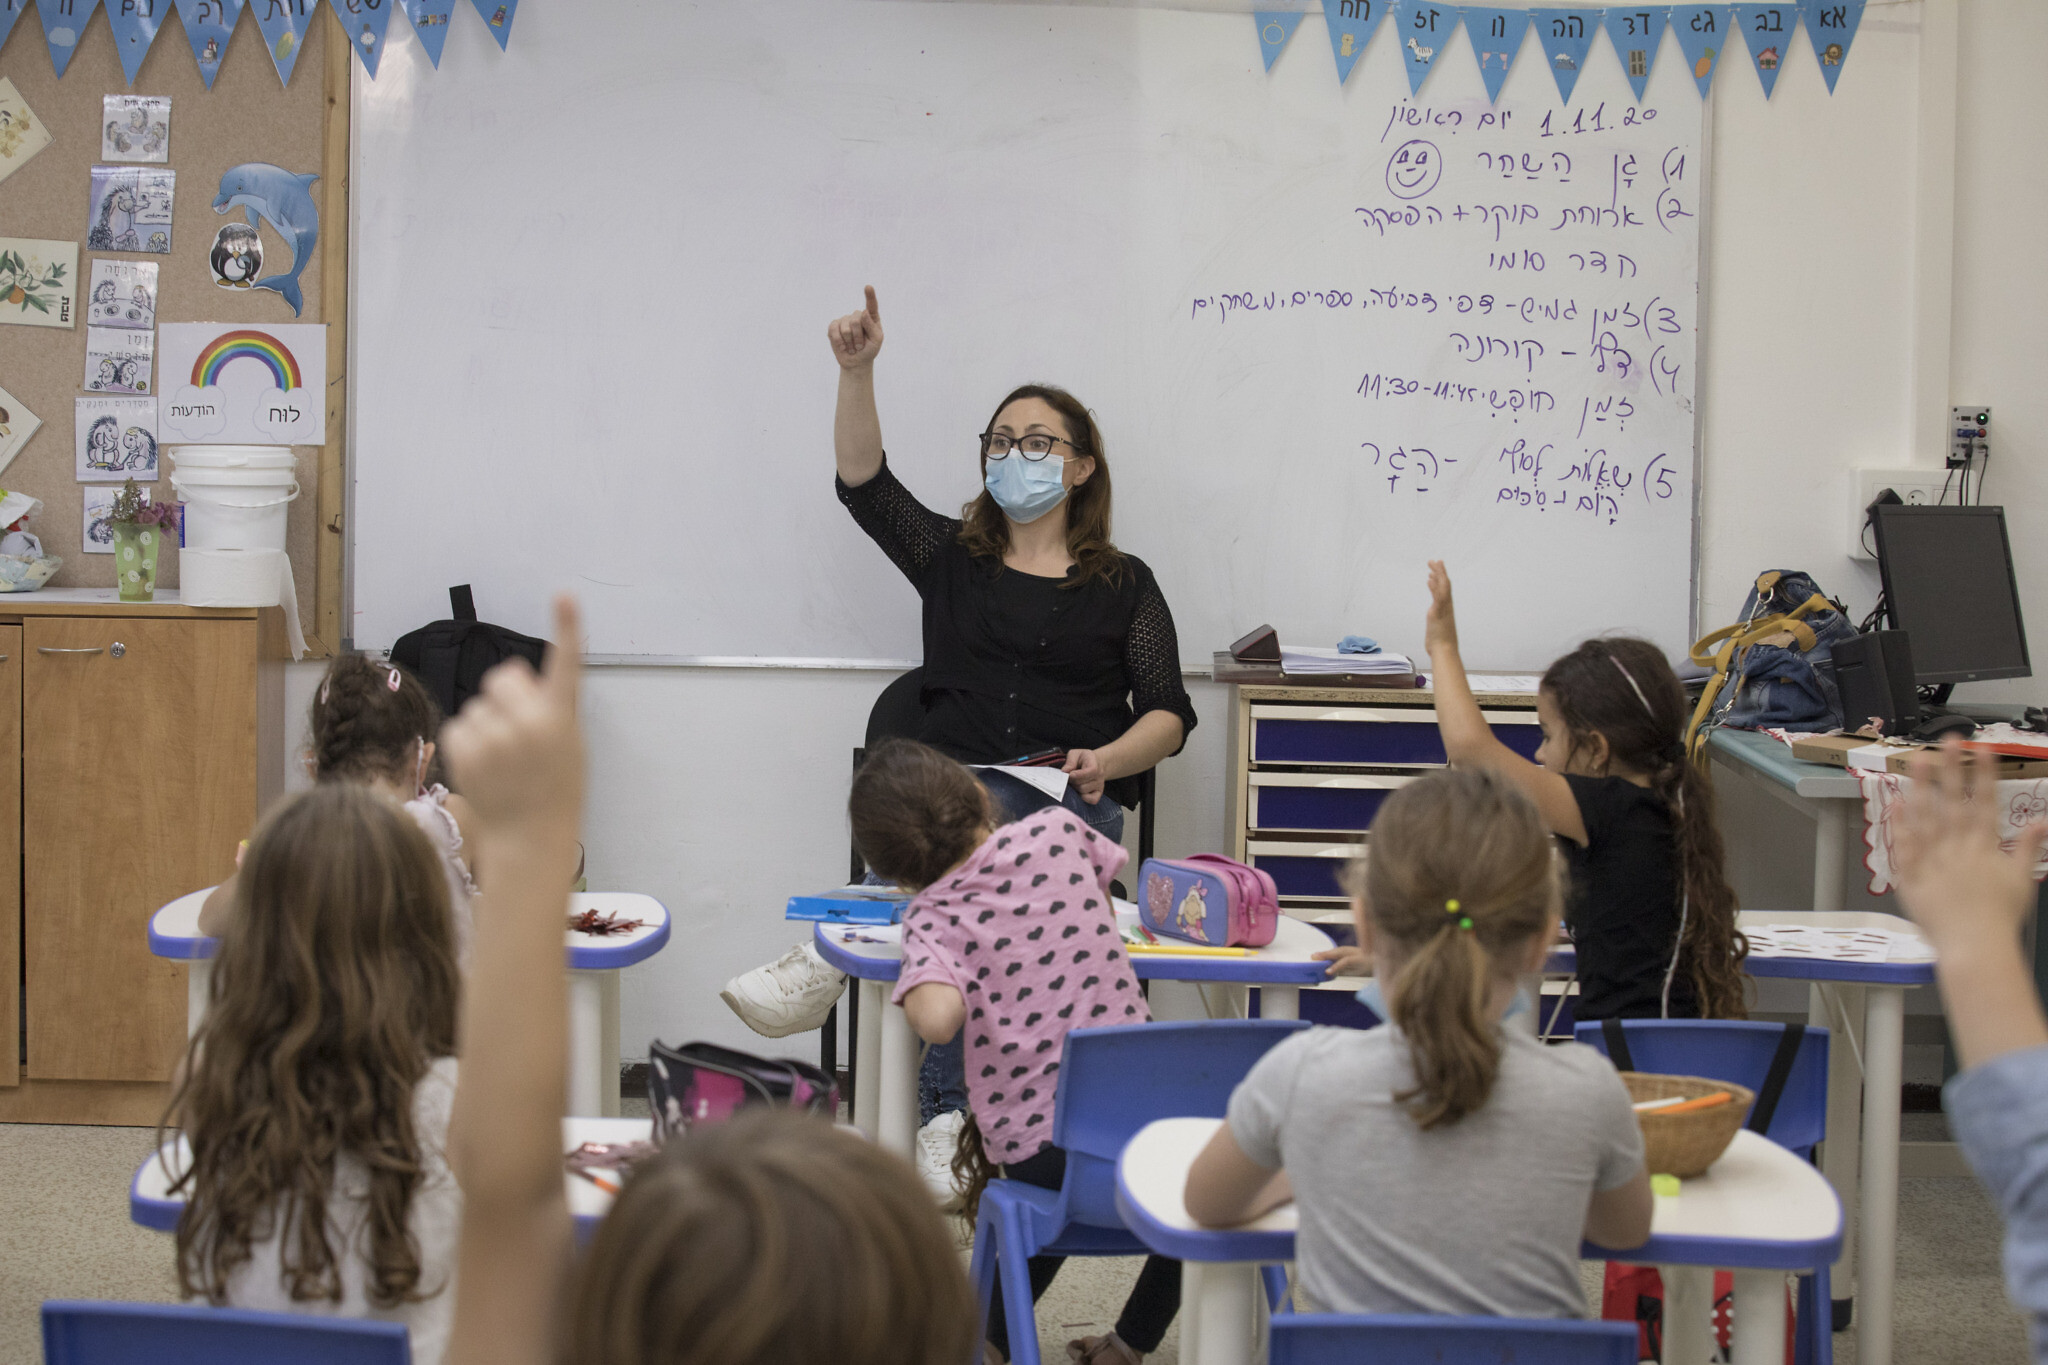 Increased child infection rates cast doubt on school reopenings